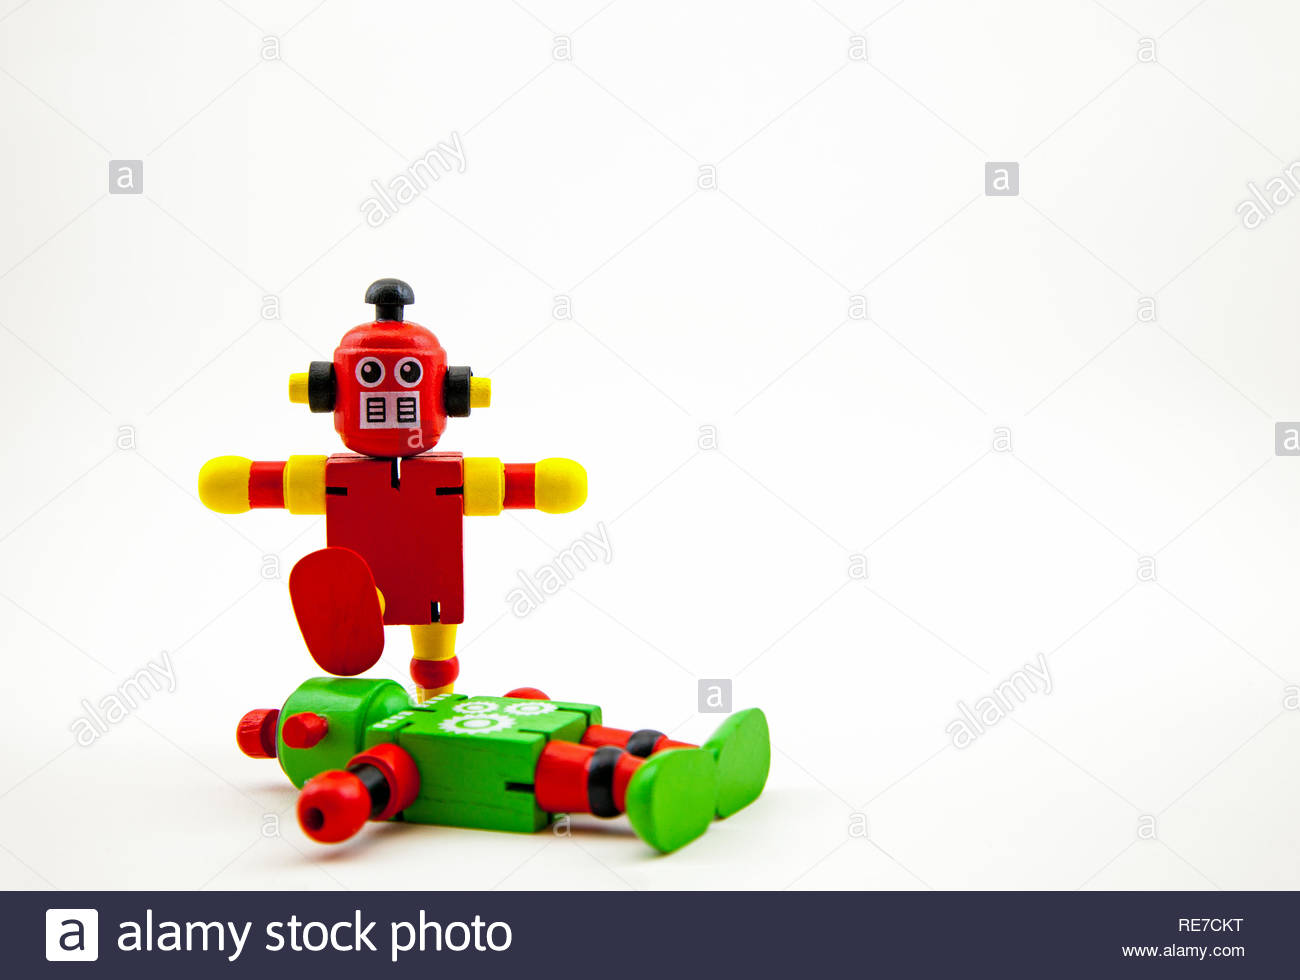 A red/yellow wooden toy robot about to stamp on the head of a prostrate green/red one. White background with copy space. Concepts: violence, menace - Stock Image